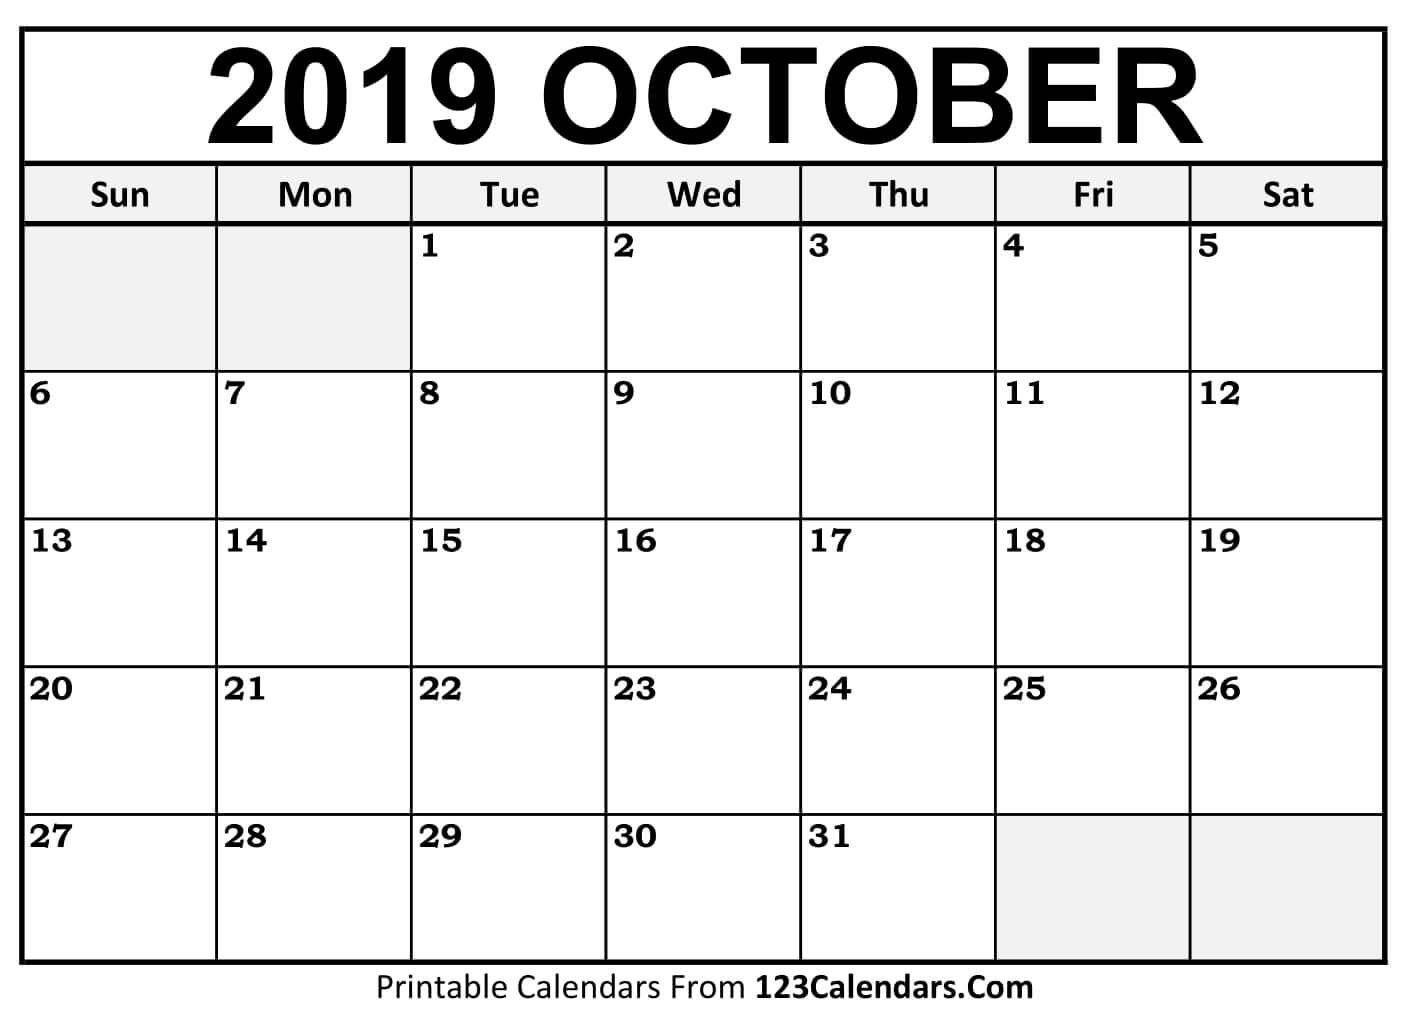 Printable October 2019 Calendar Templates - 123Calendars Calendar 2019 Oct